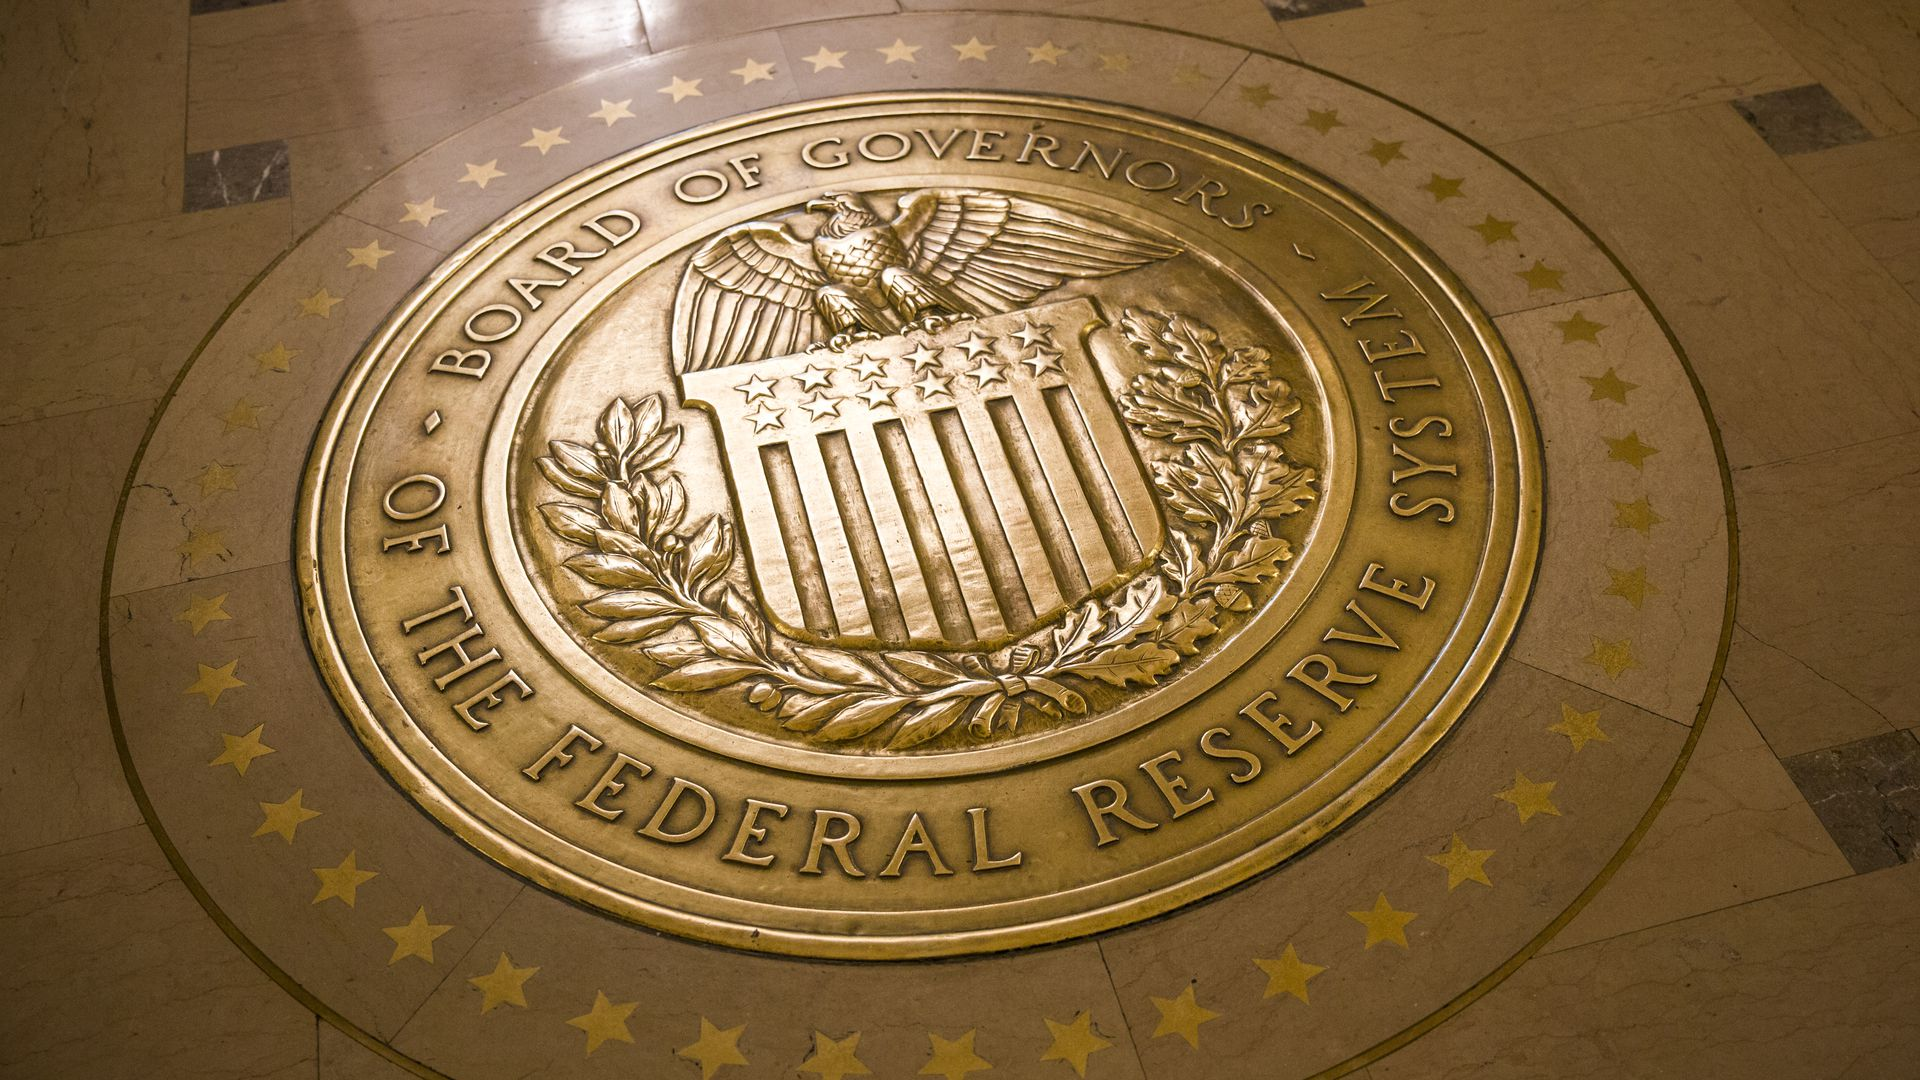 Gold-plated seal of the United States Federal Reserve.